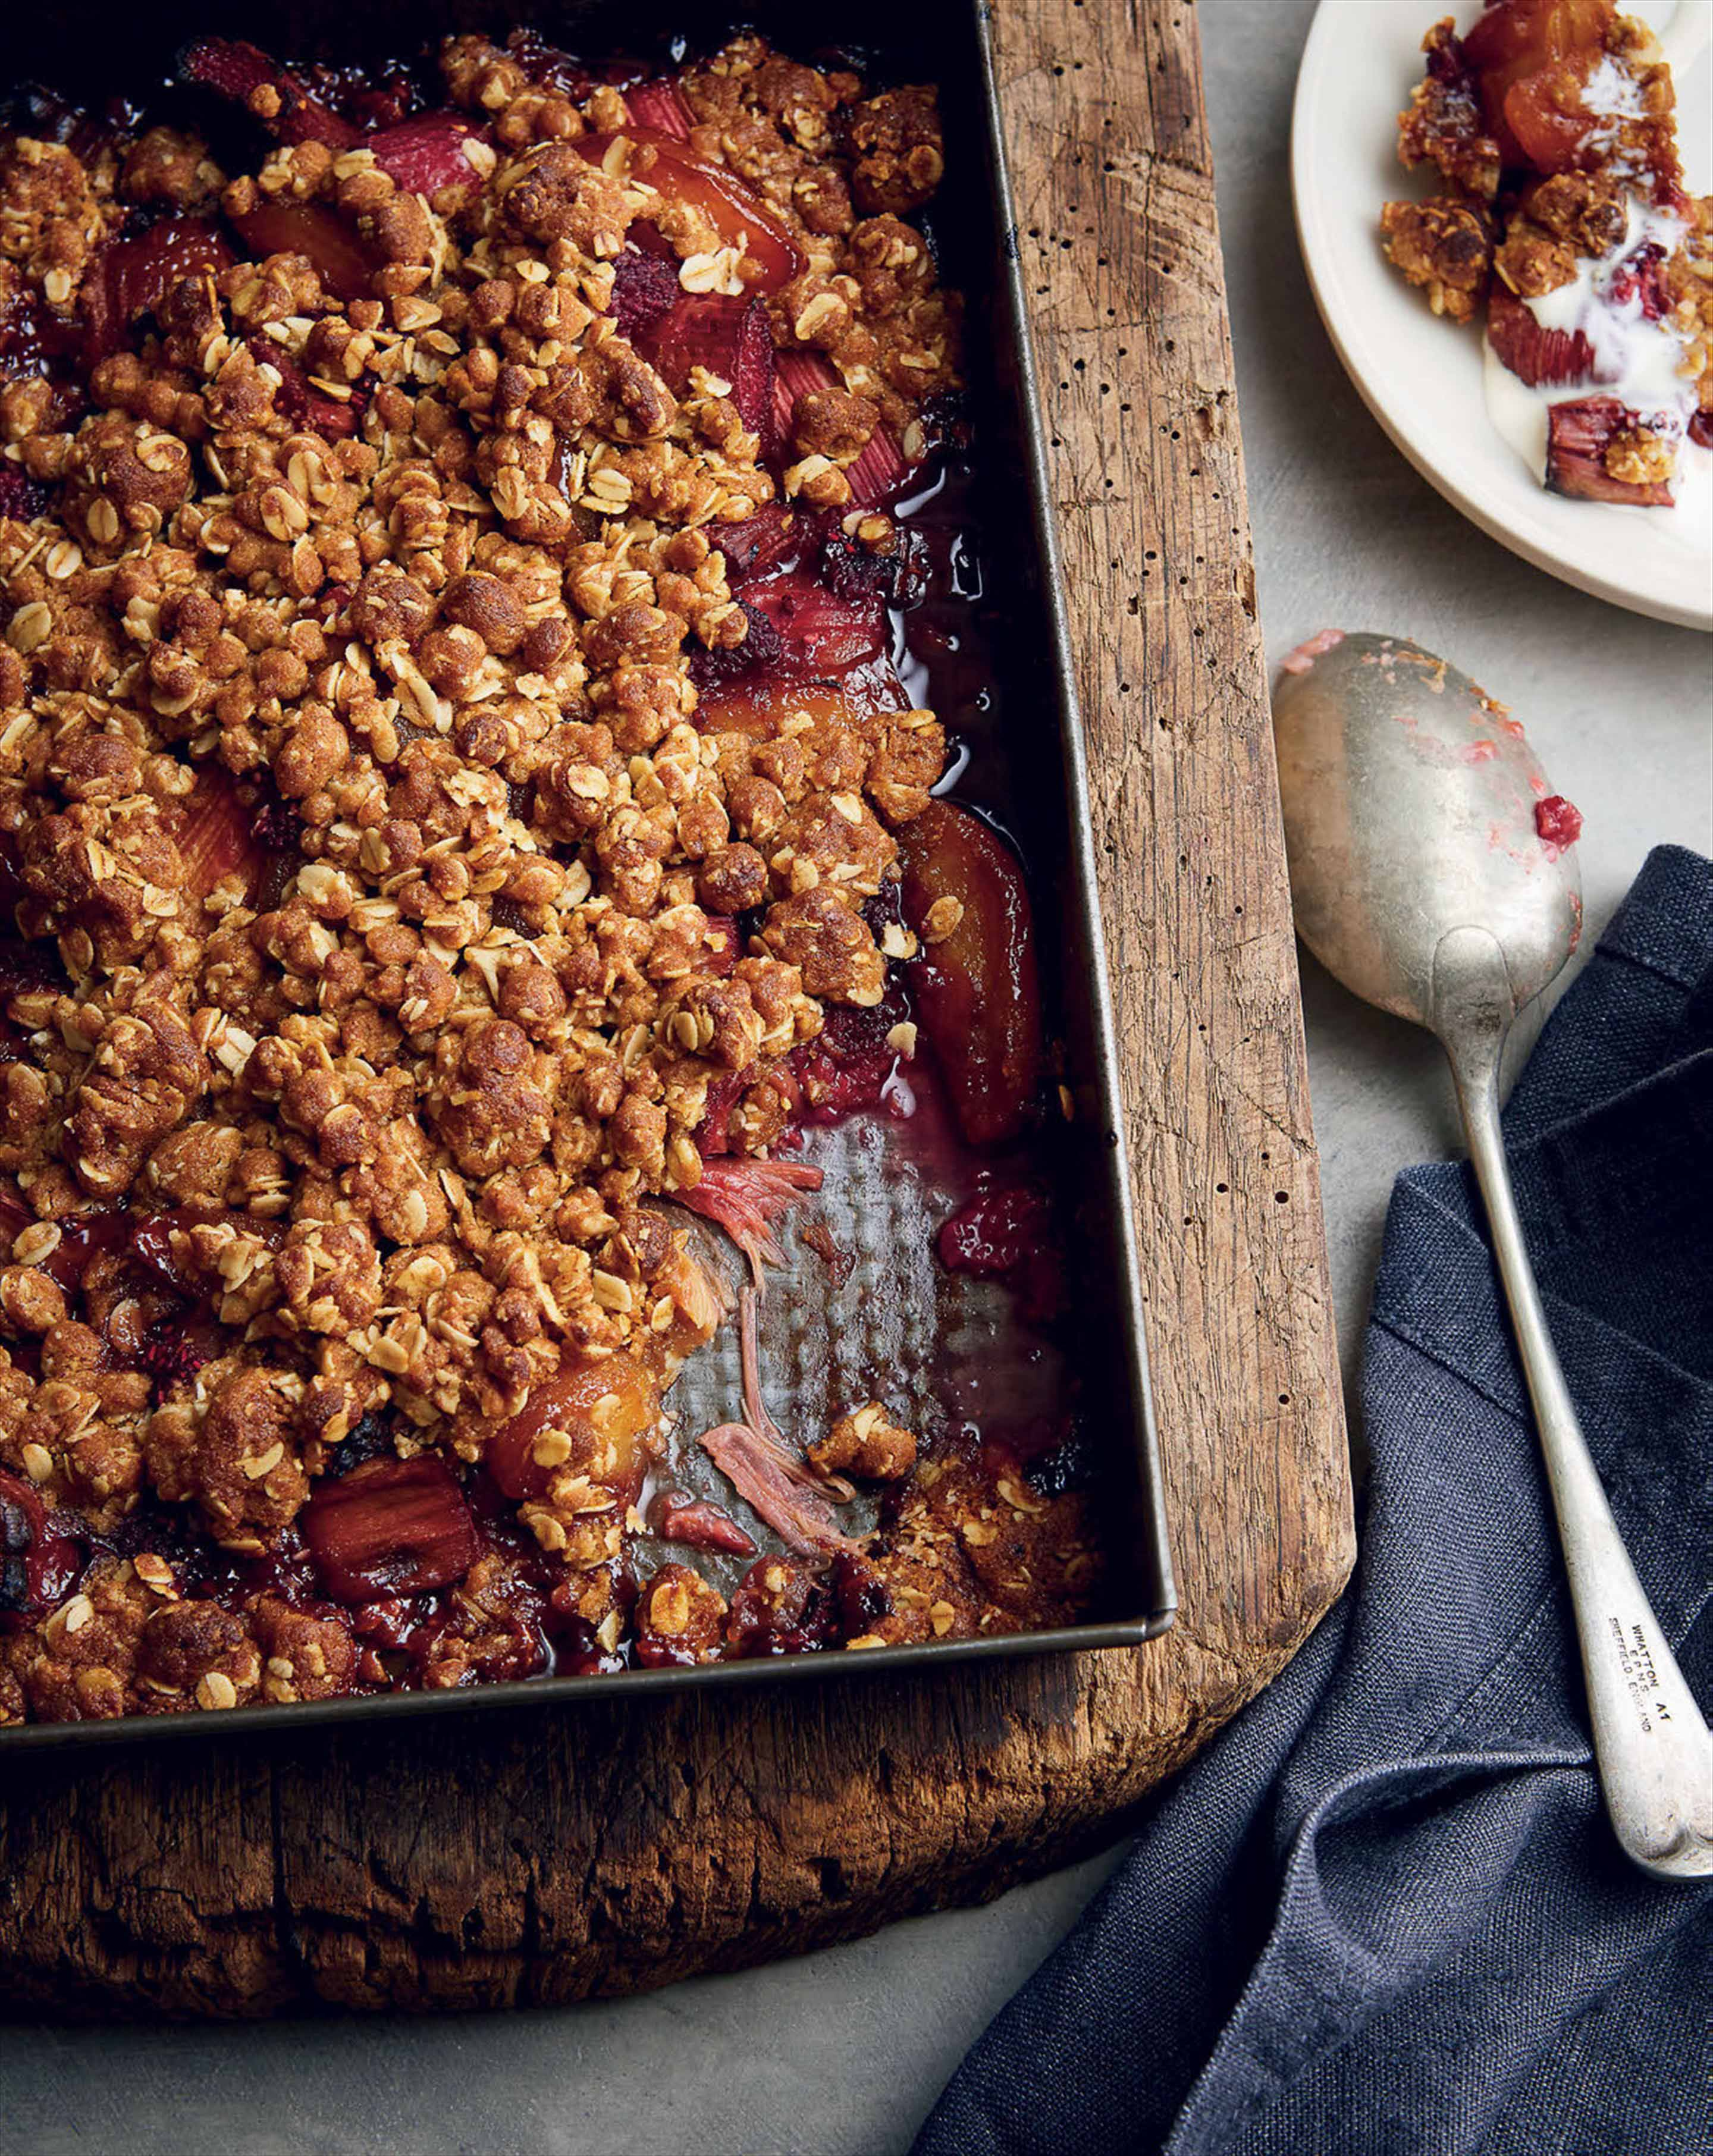 Rhubarb, raspberry and apple crumble with ginger ice cream